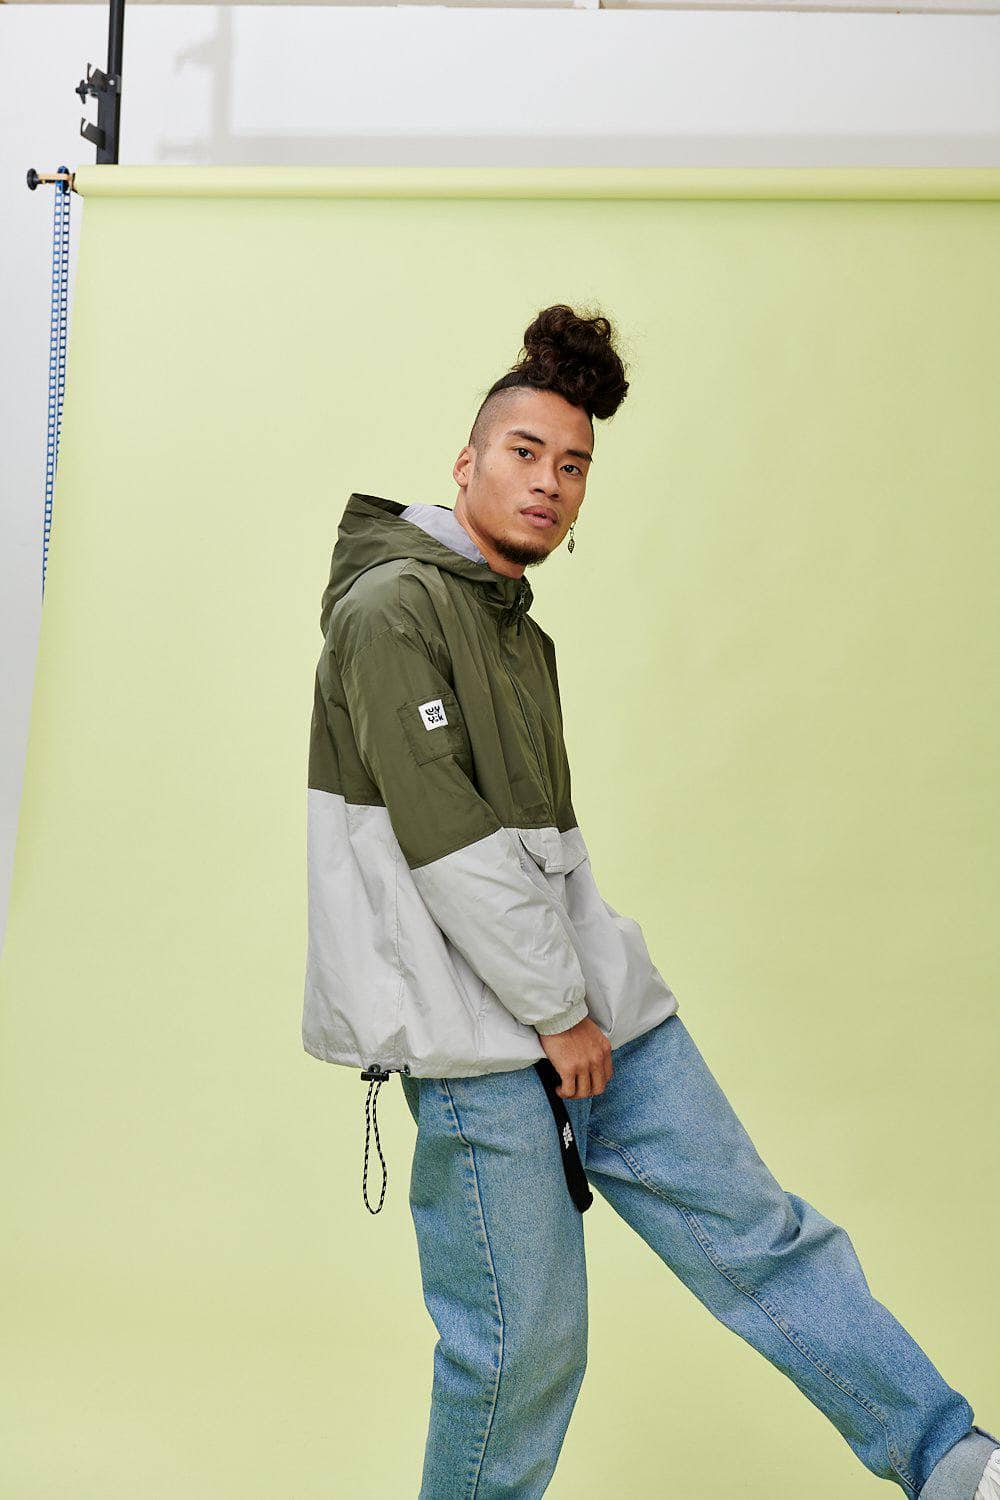 Lucy & Yak coat 'Tucker' Jacket in Khaki Green & Grey